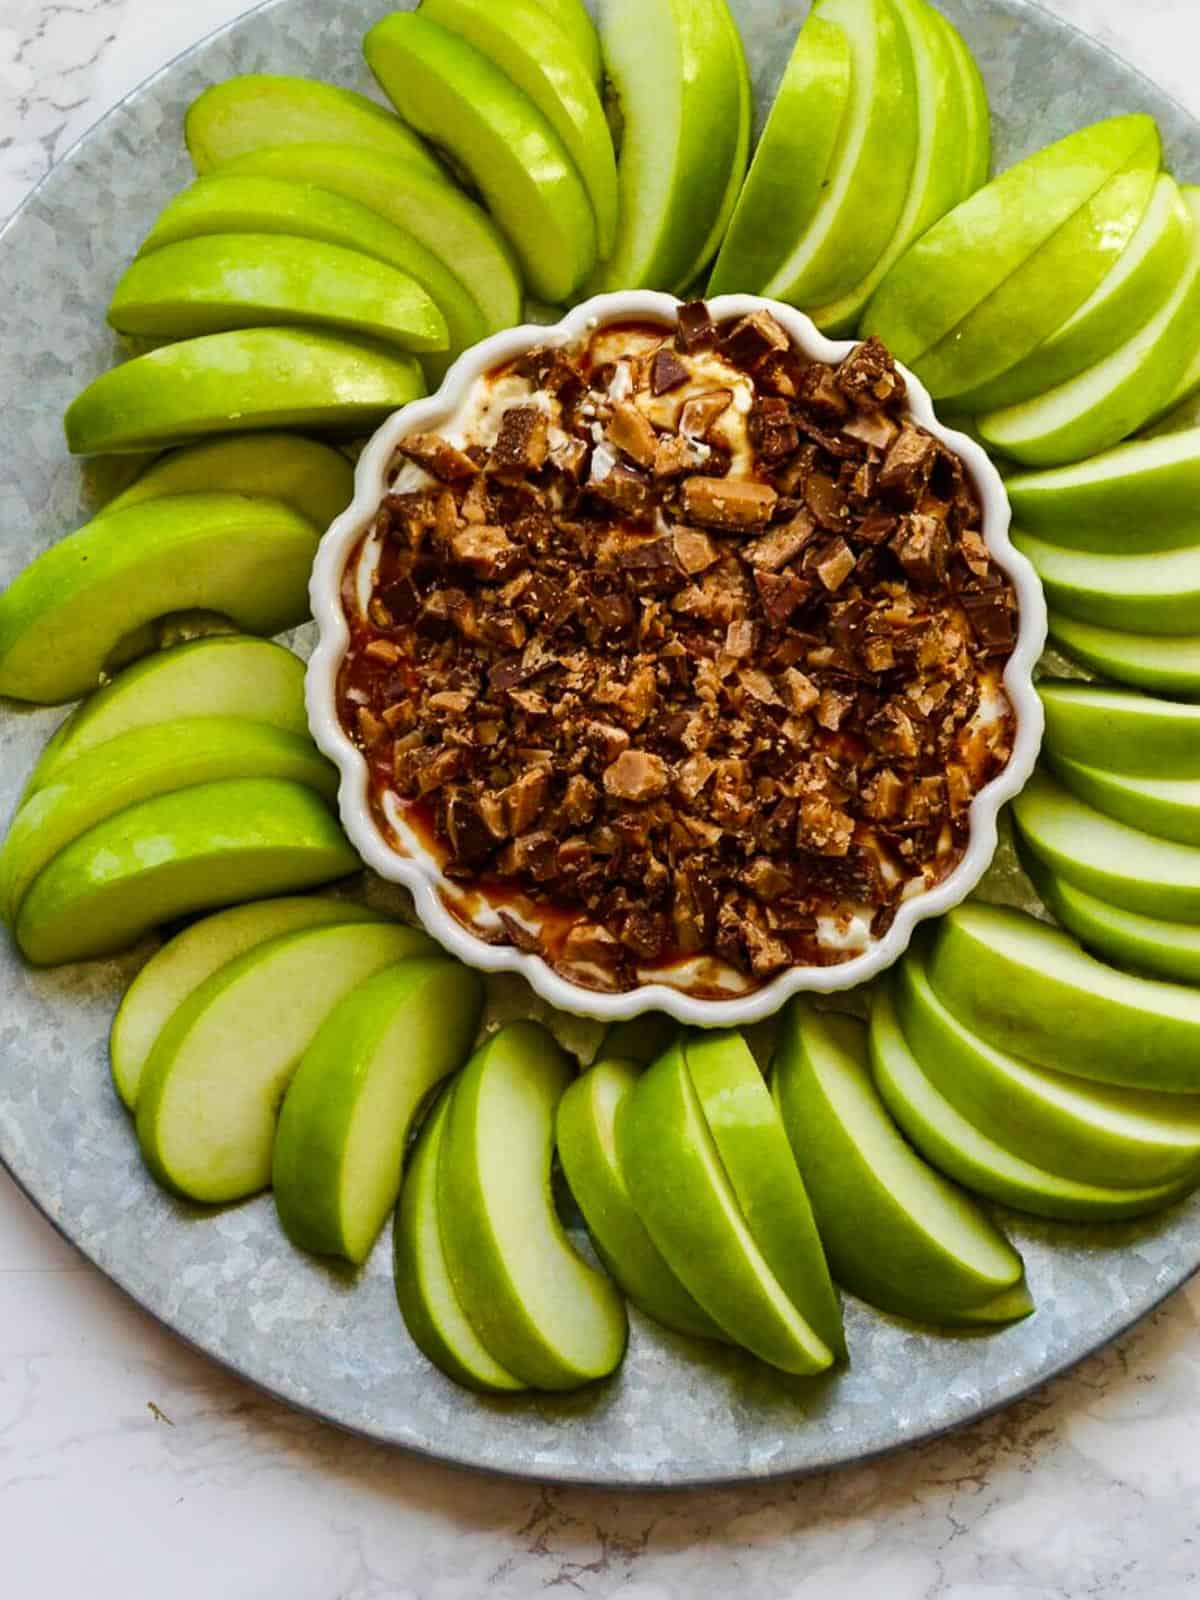 A large silver platter with green apple slices layed into a circular pattern around a white dish holding a sweet caramel apple dip for dessert topped with crushed Heath candy bars.